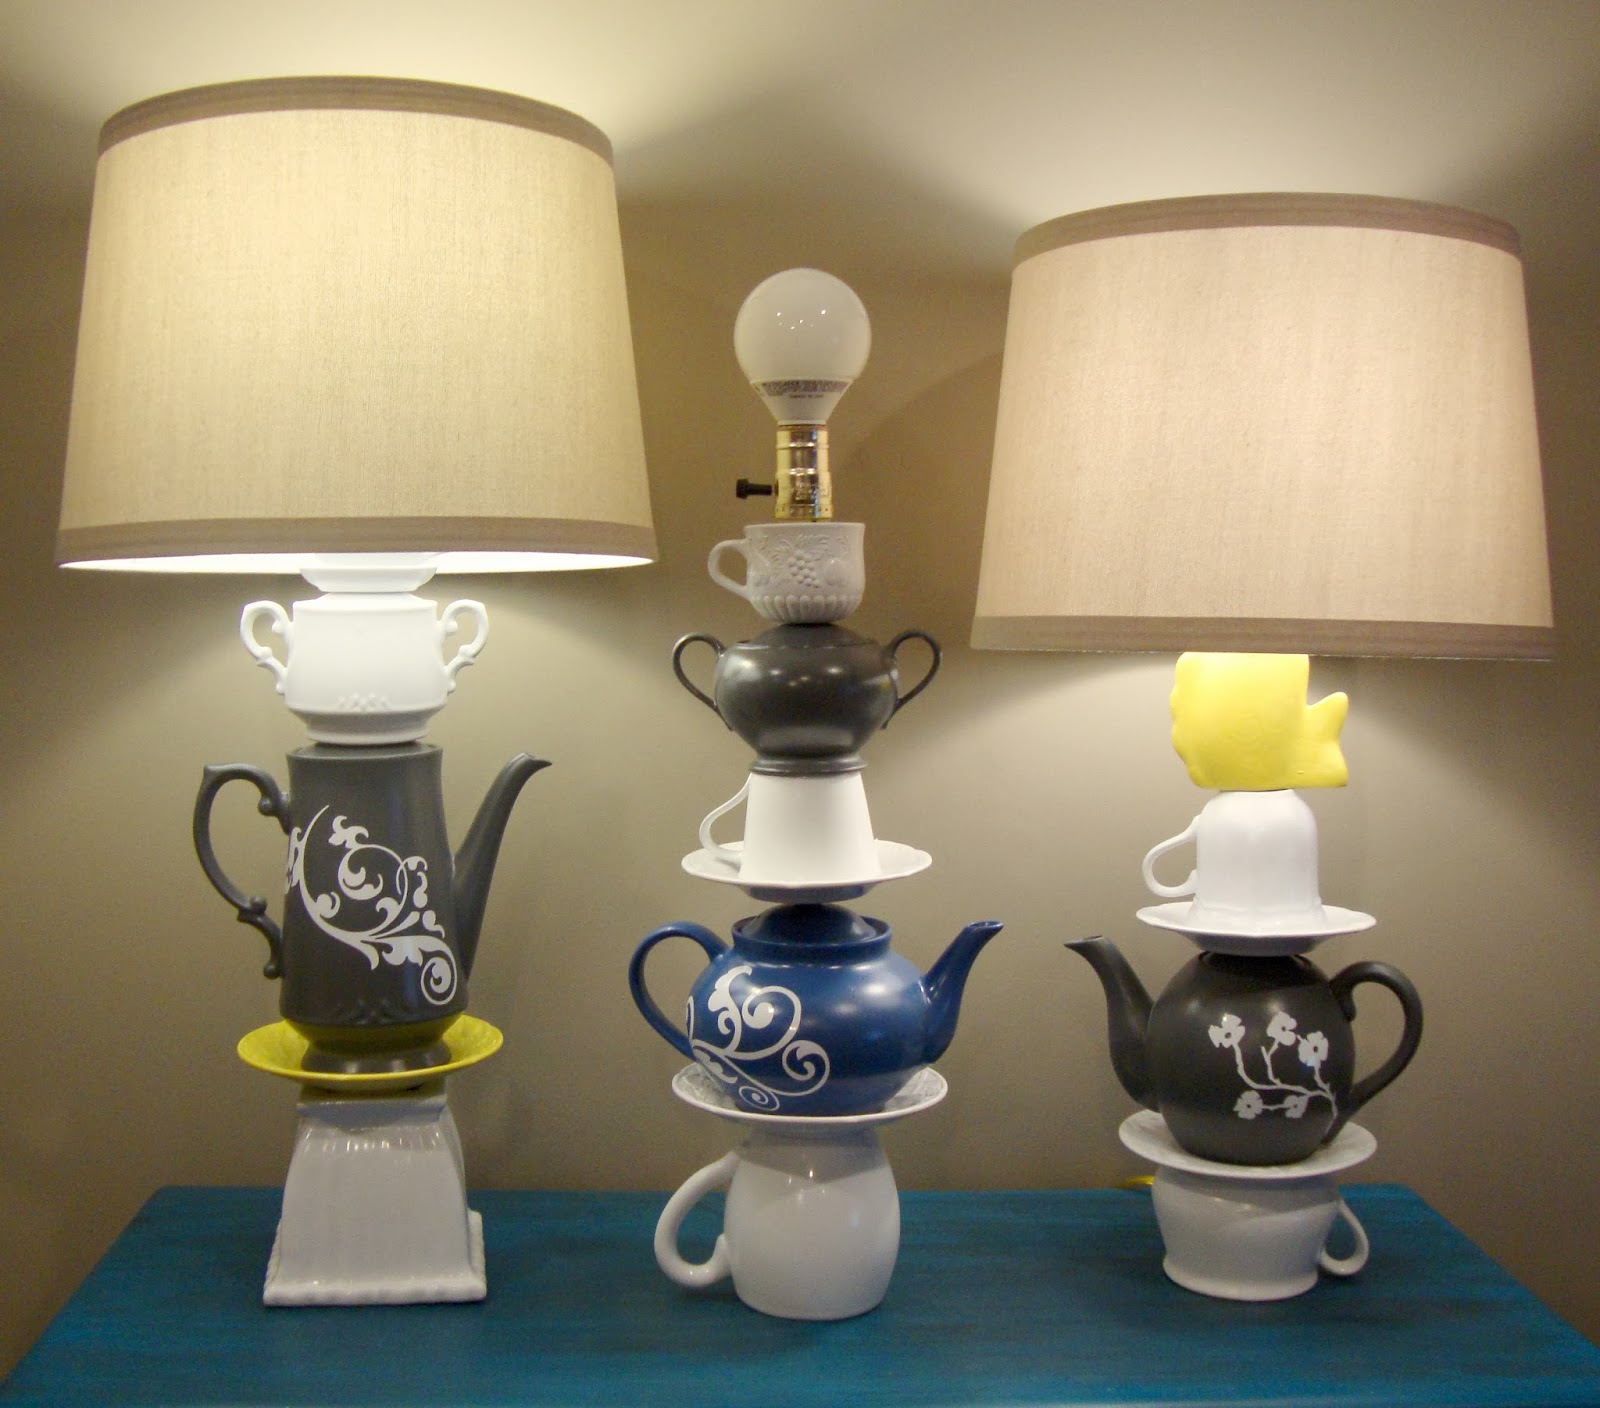 http://doodlecraft.blogspot.com/2013/04/whimsical-mad-hatter-teapot-lamps.html